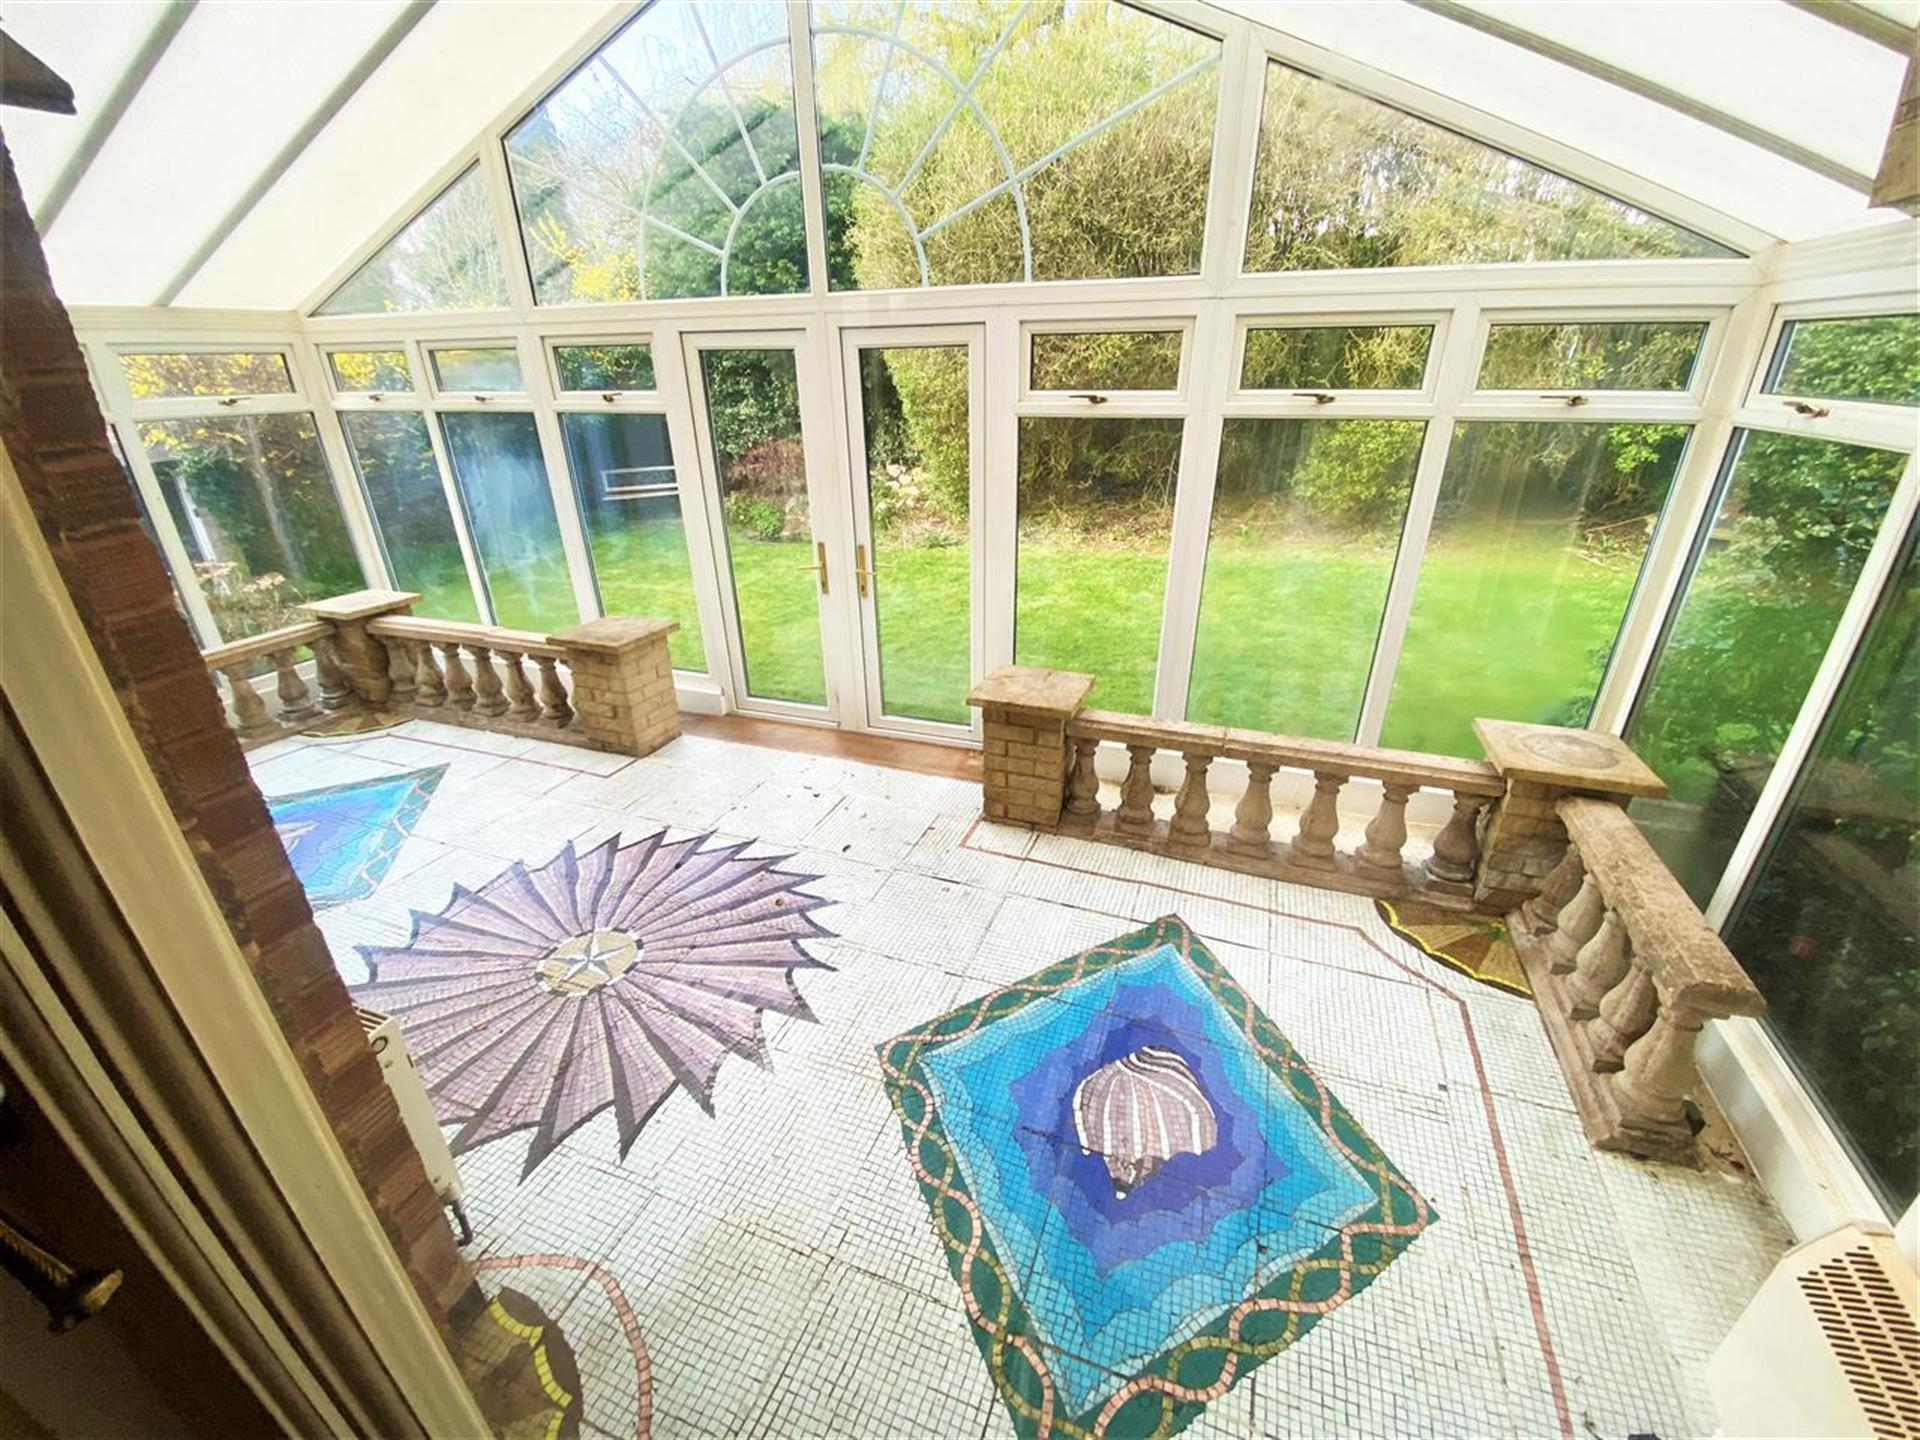 4 Bedroom Detached Bungalow For Sale - Conservatory Area